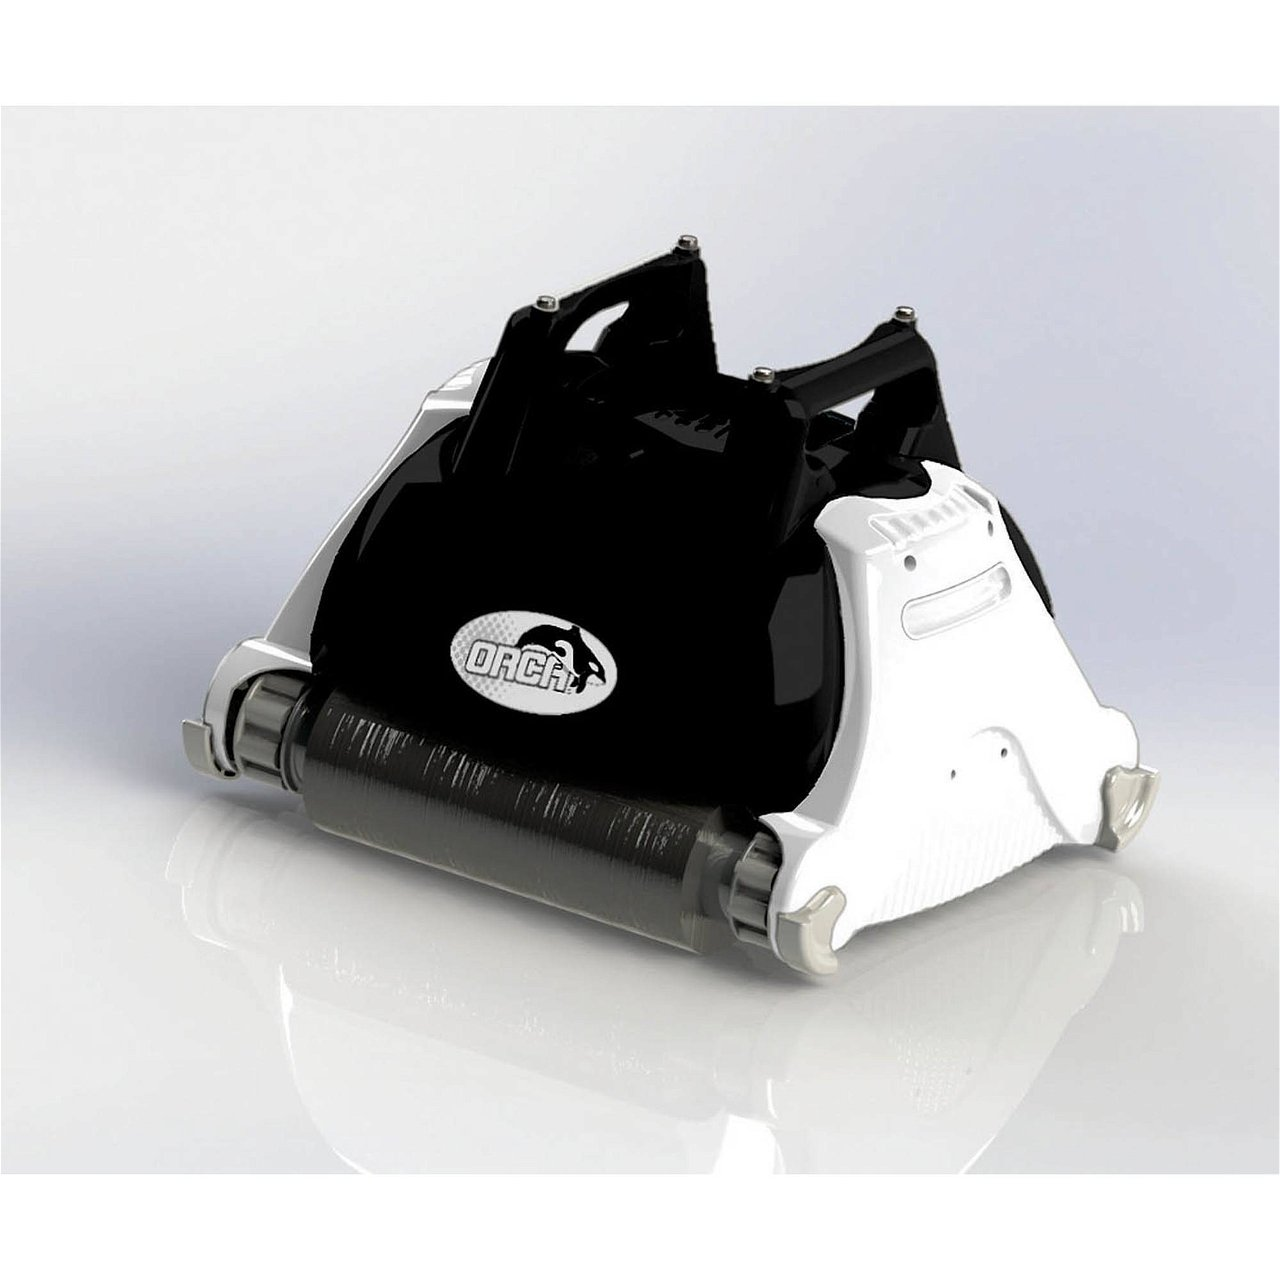 Poolcleaner ORCA 150